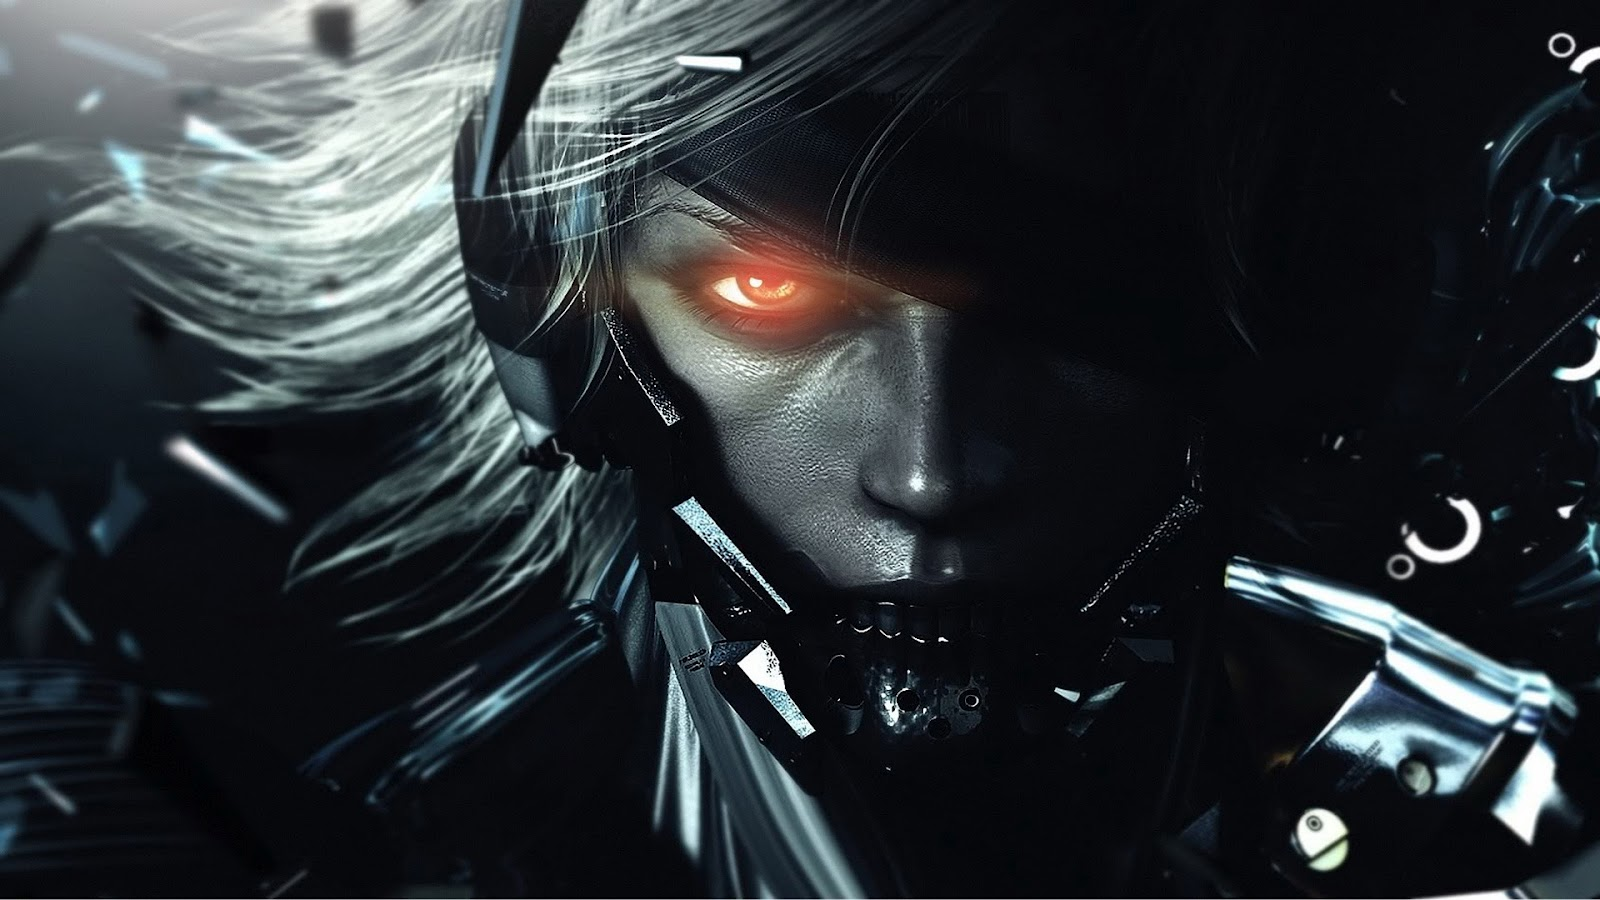 metal gear rising backgrounds A1